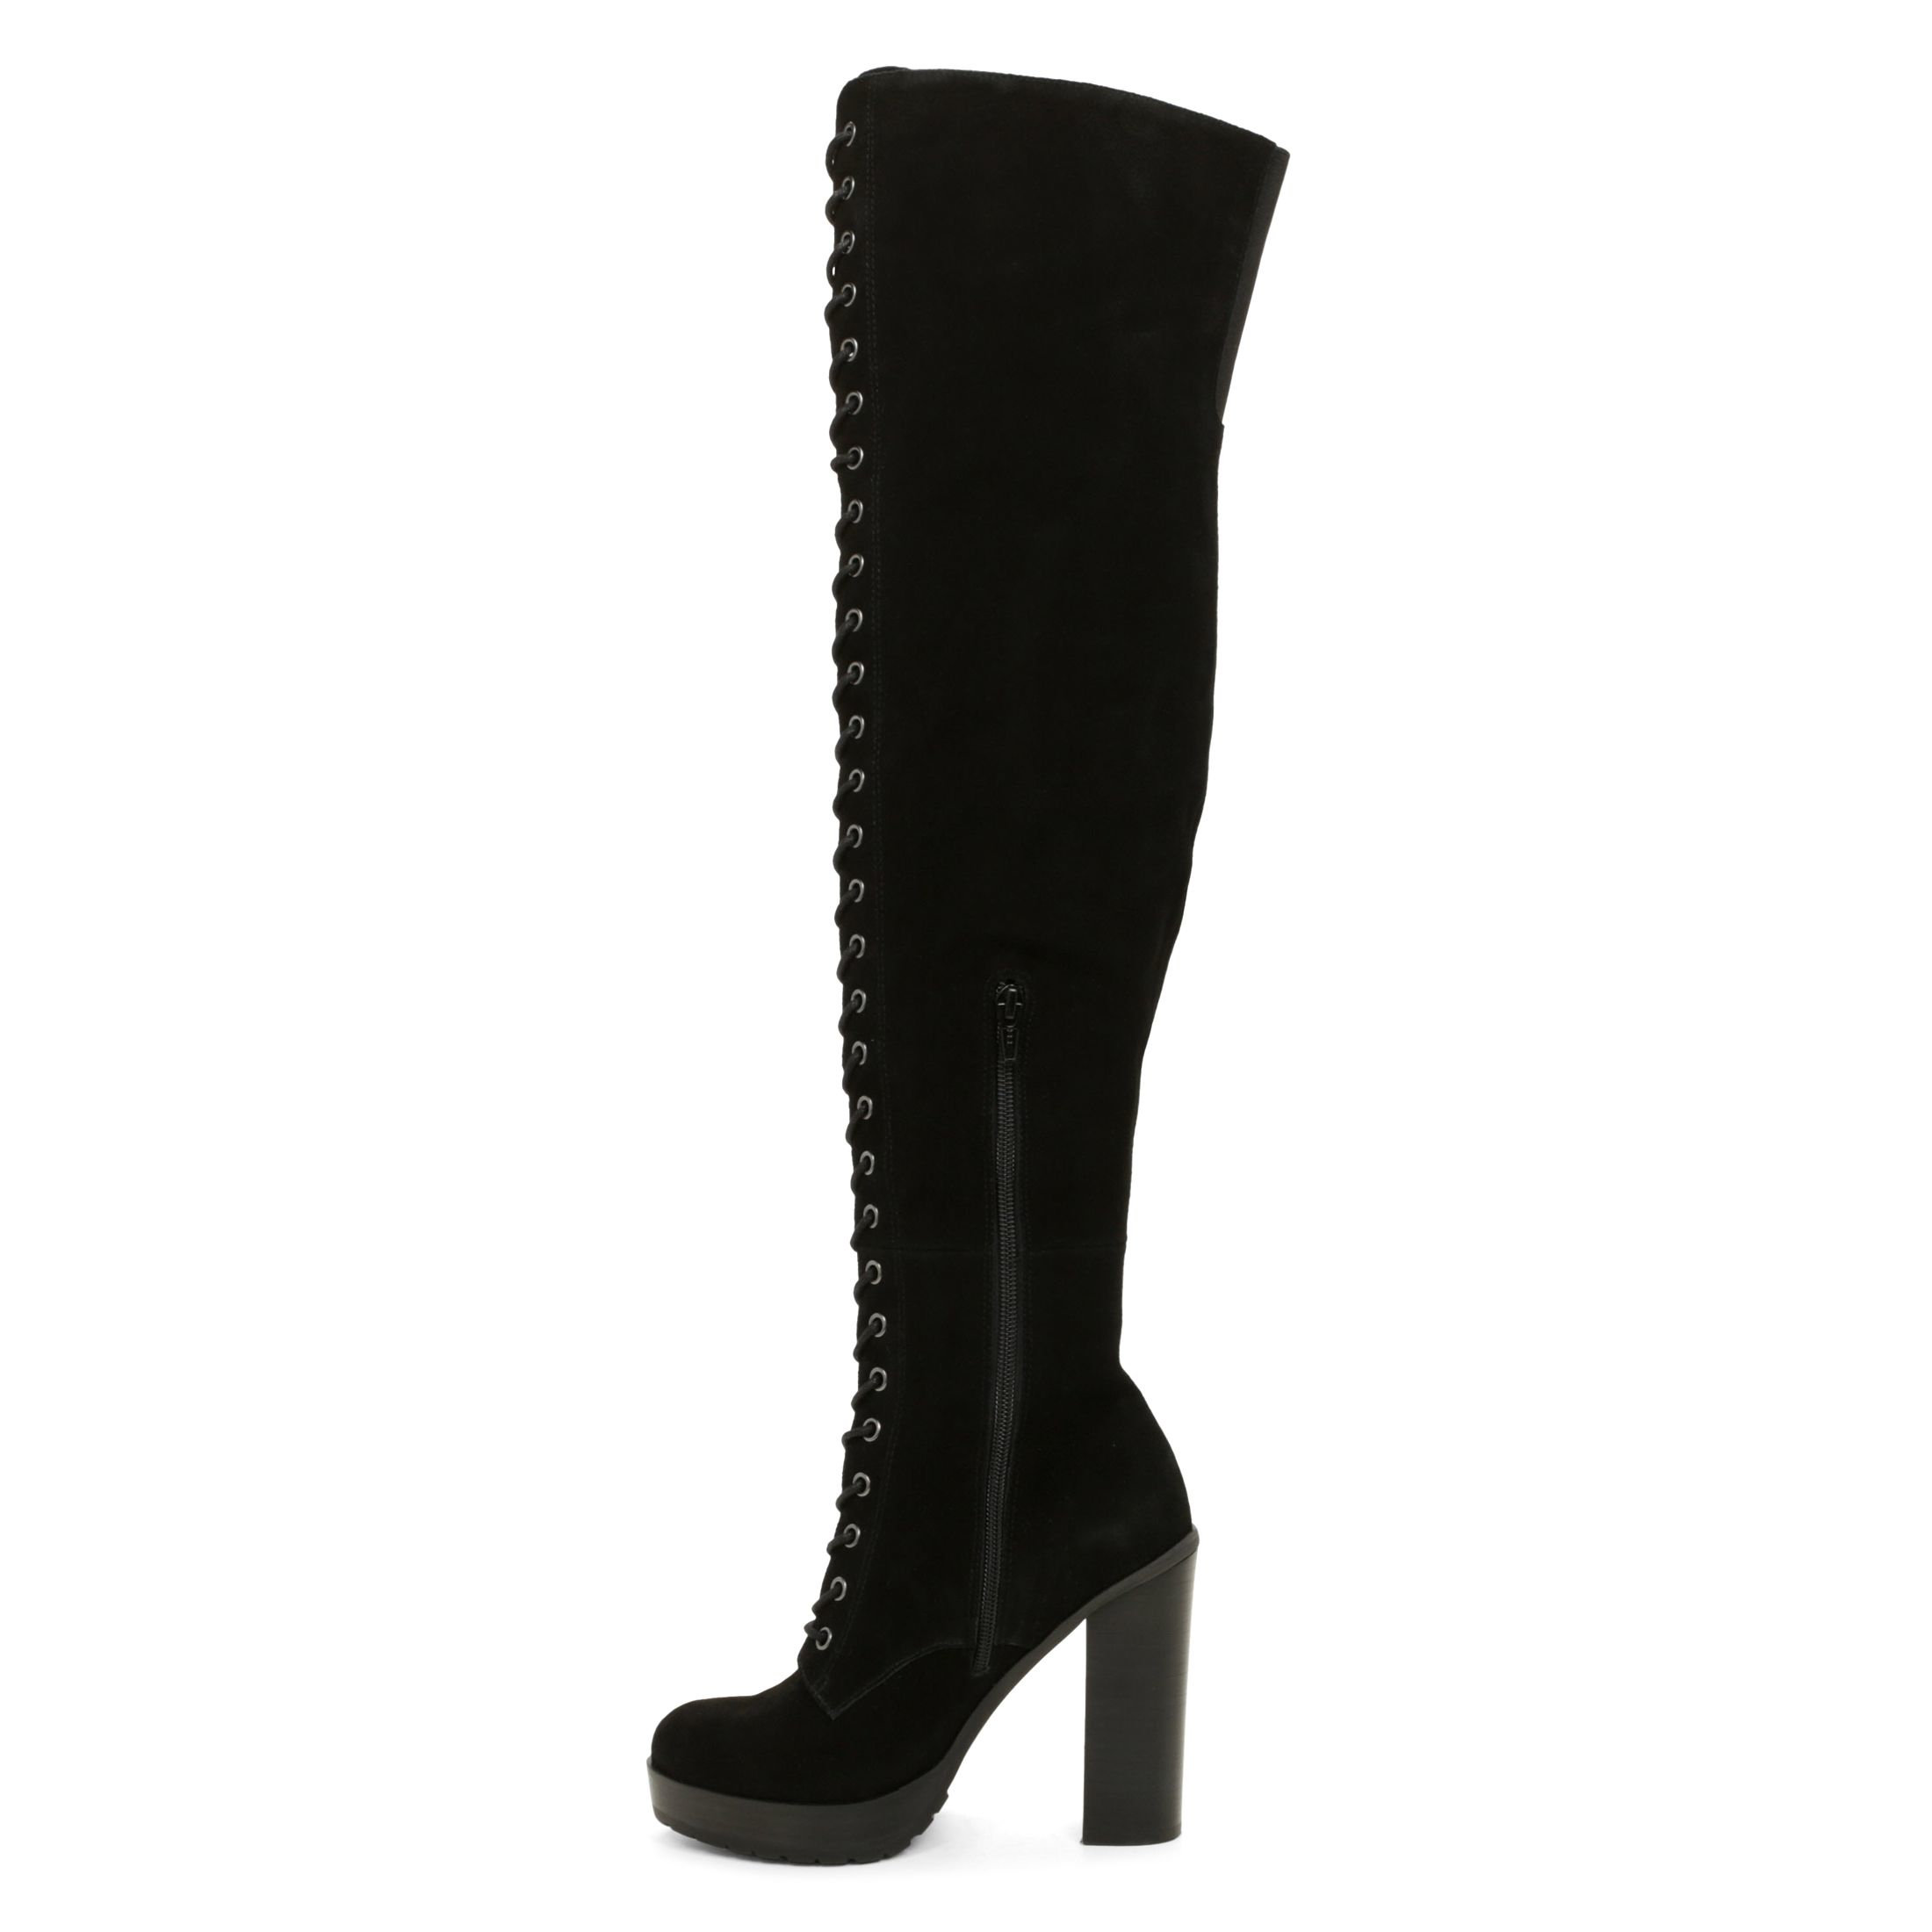 aldo adeasien lace up the knee boots in black lyst